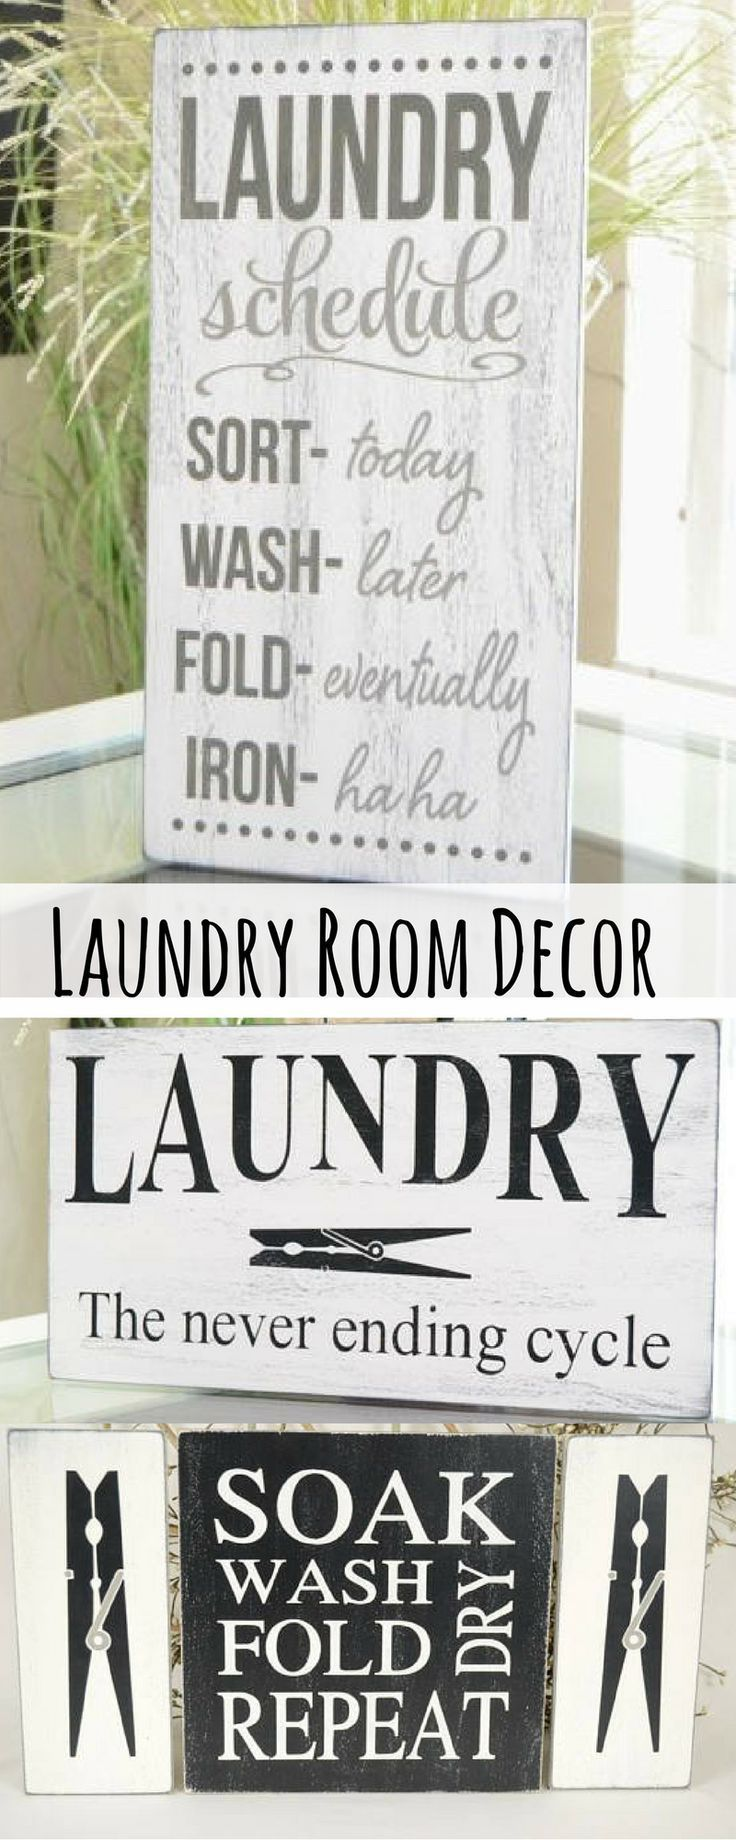 I Love These Signs For Laundry Decor Especially The Laundry